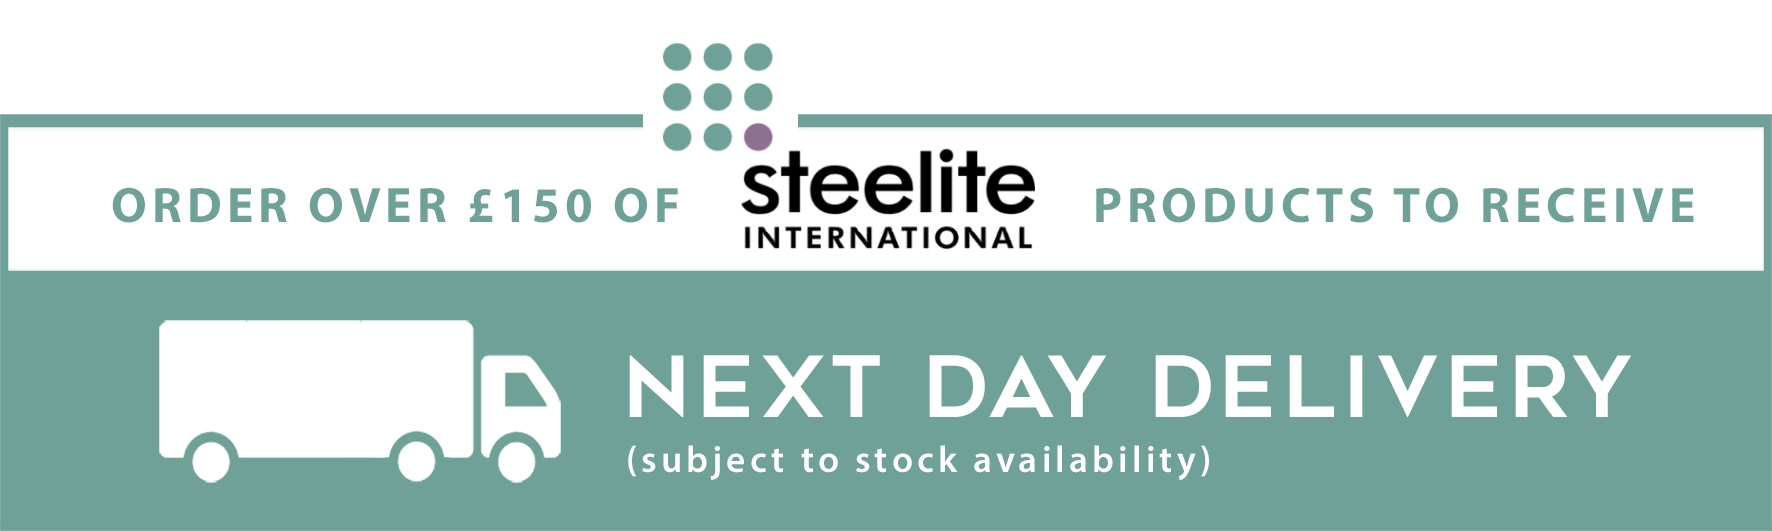 Get your order tomorrow when you order £150 net of steelite products by 11am - subject to stock